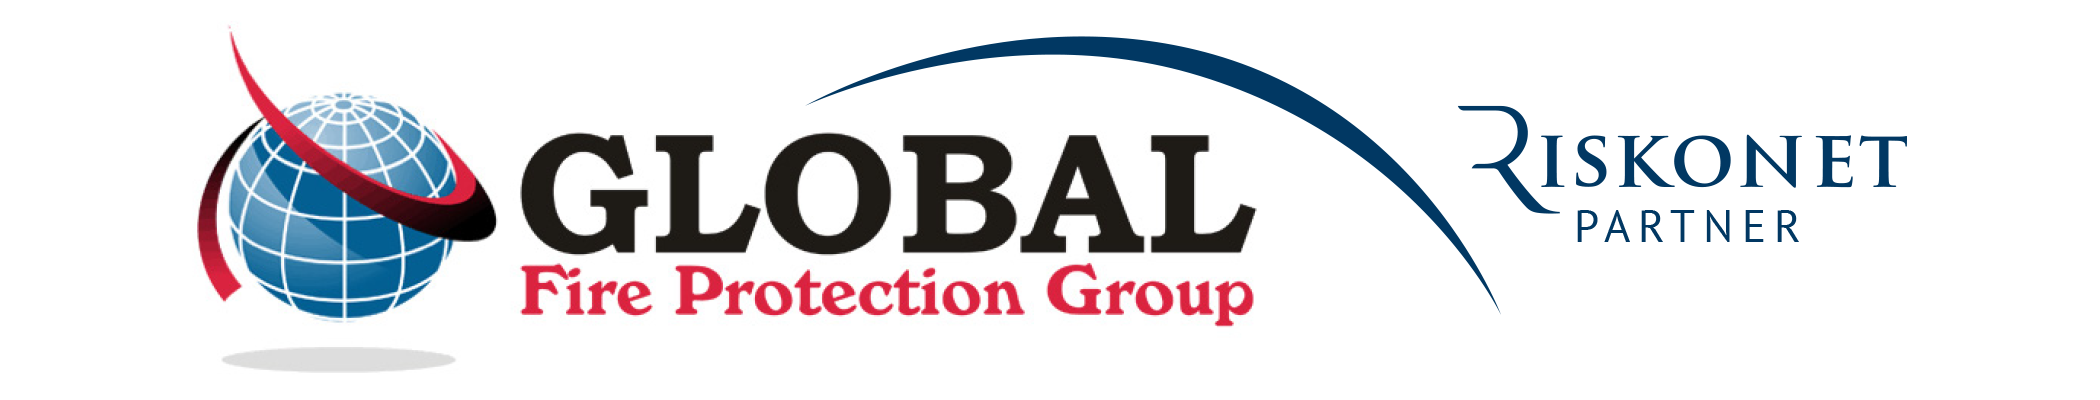 Global Fire Protection Group